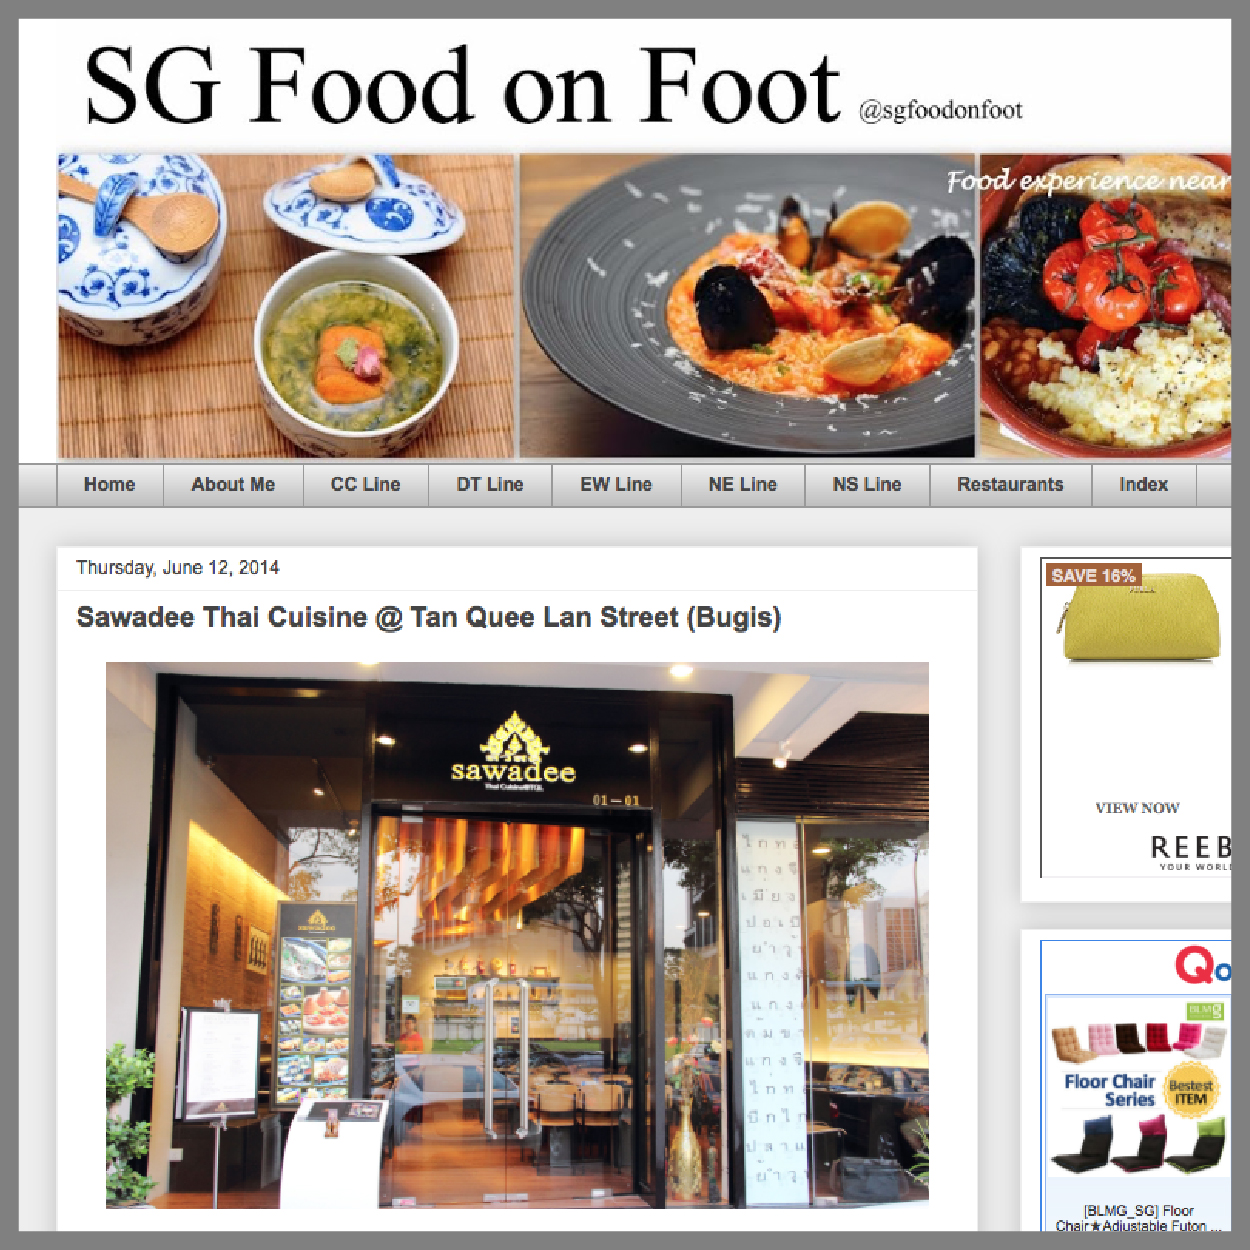 SG Food on Foot, 12 June 2014